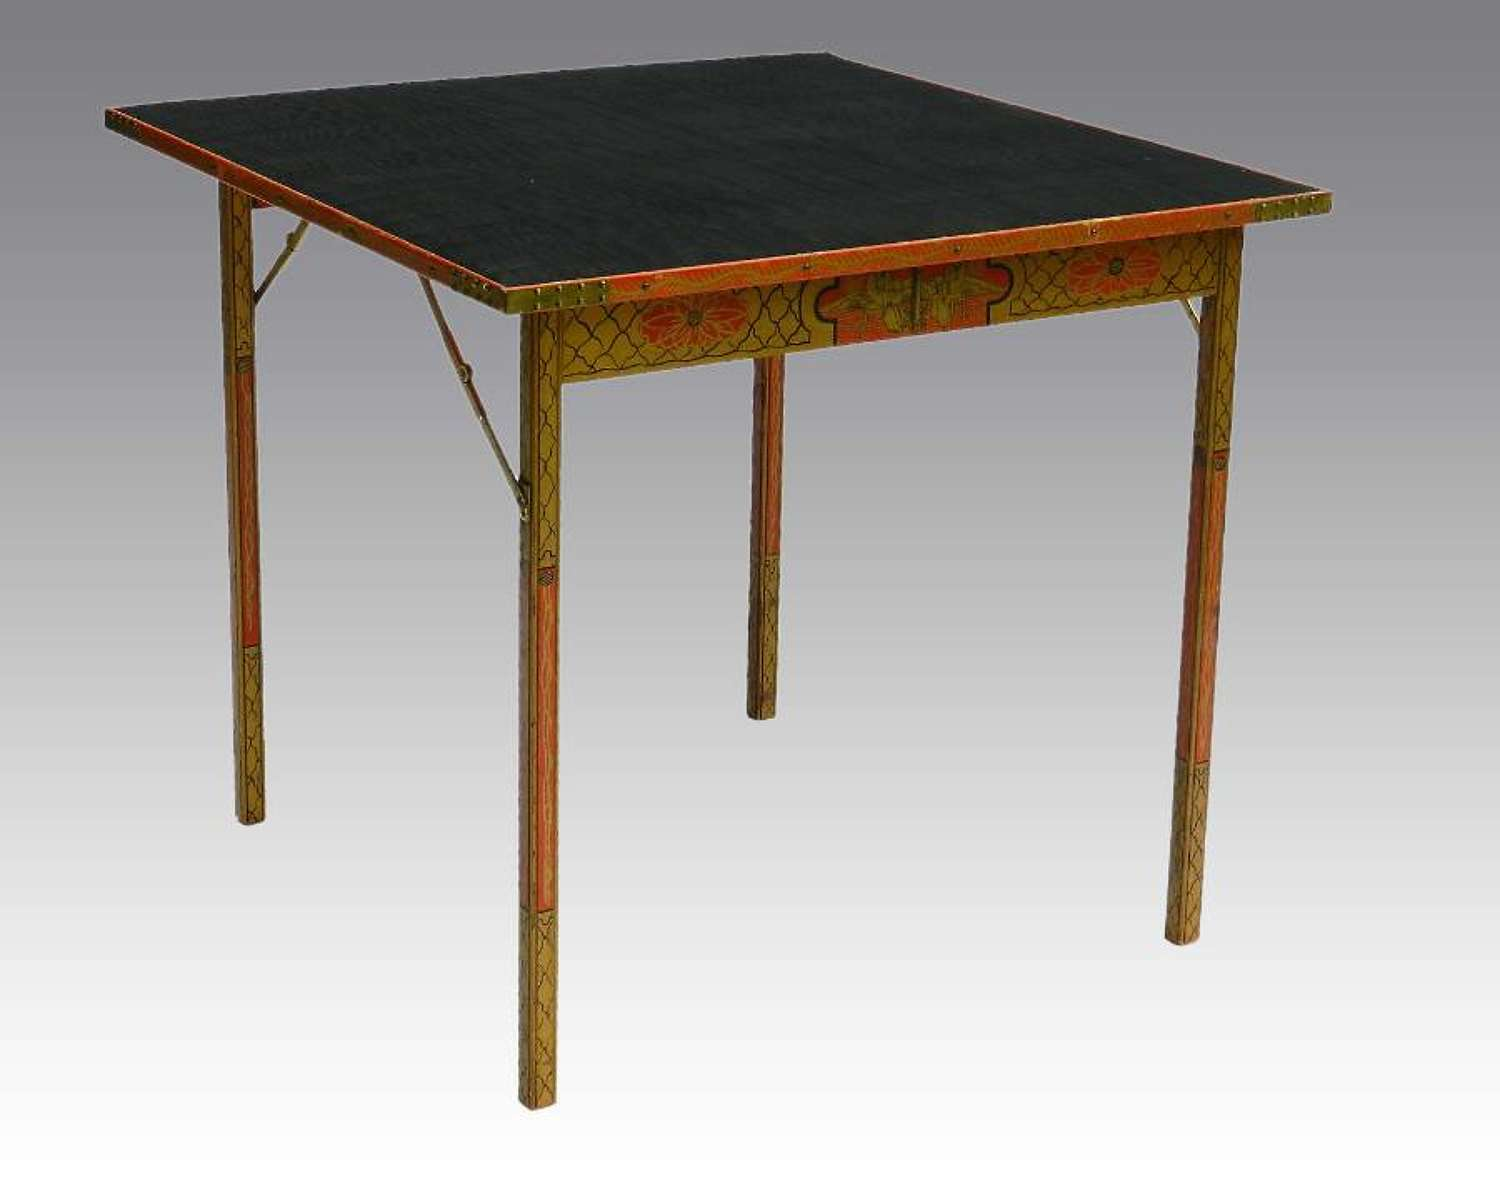 Chinoiserie Folding Card Table painted Games by George Vernon Newport Rhode Island USA